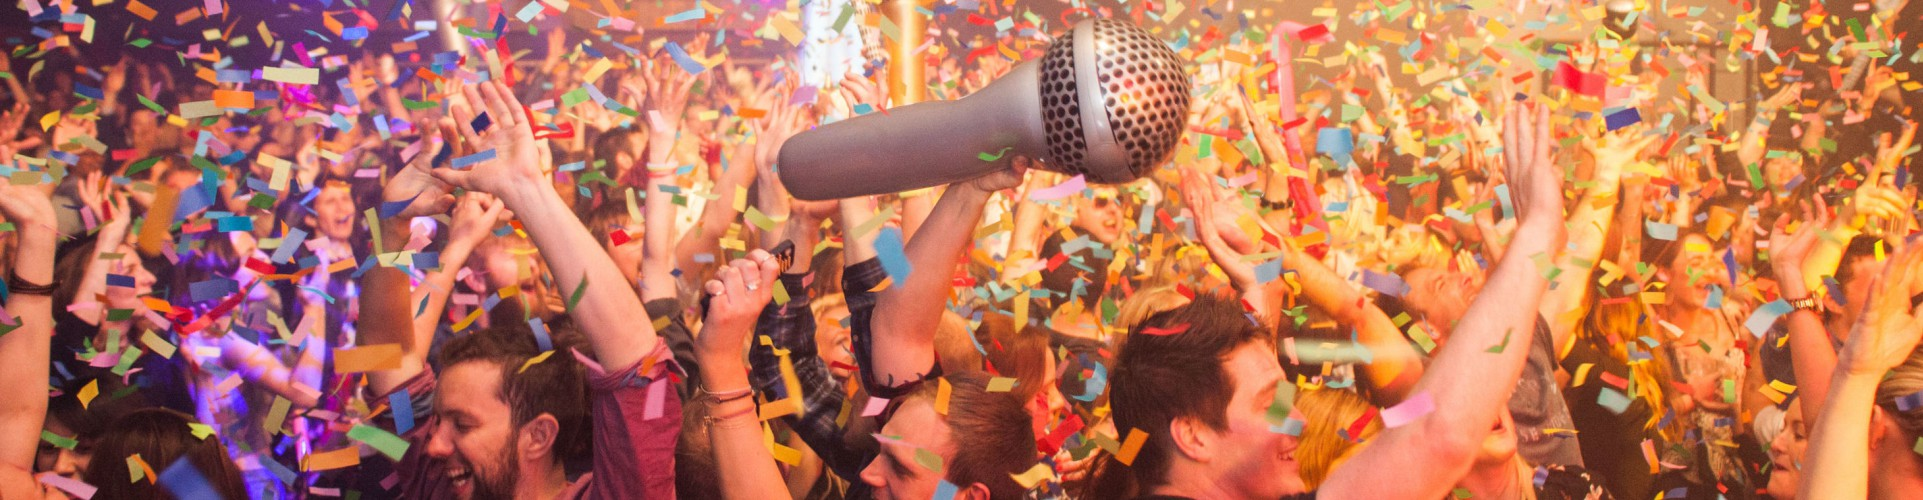 crowd in nightclub dance in multicolour confetti